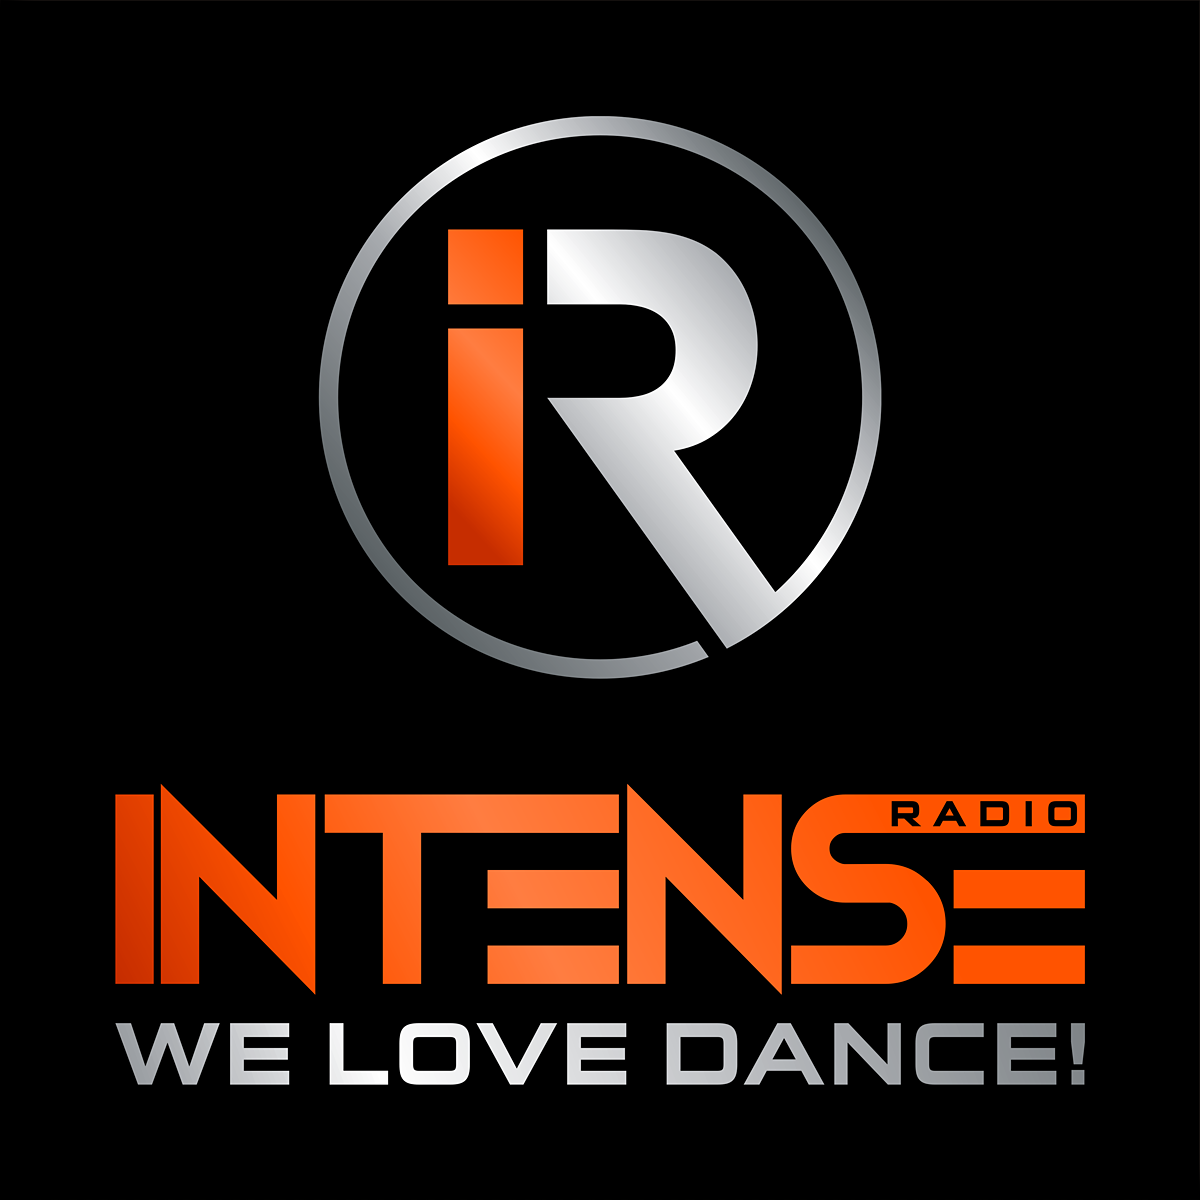 Радио Intense Radio, we love Dance Нидерланды